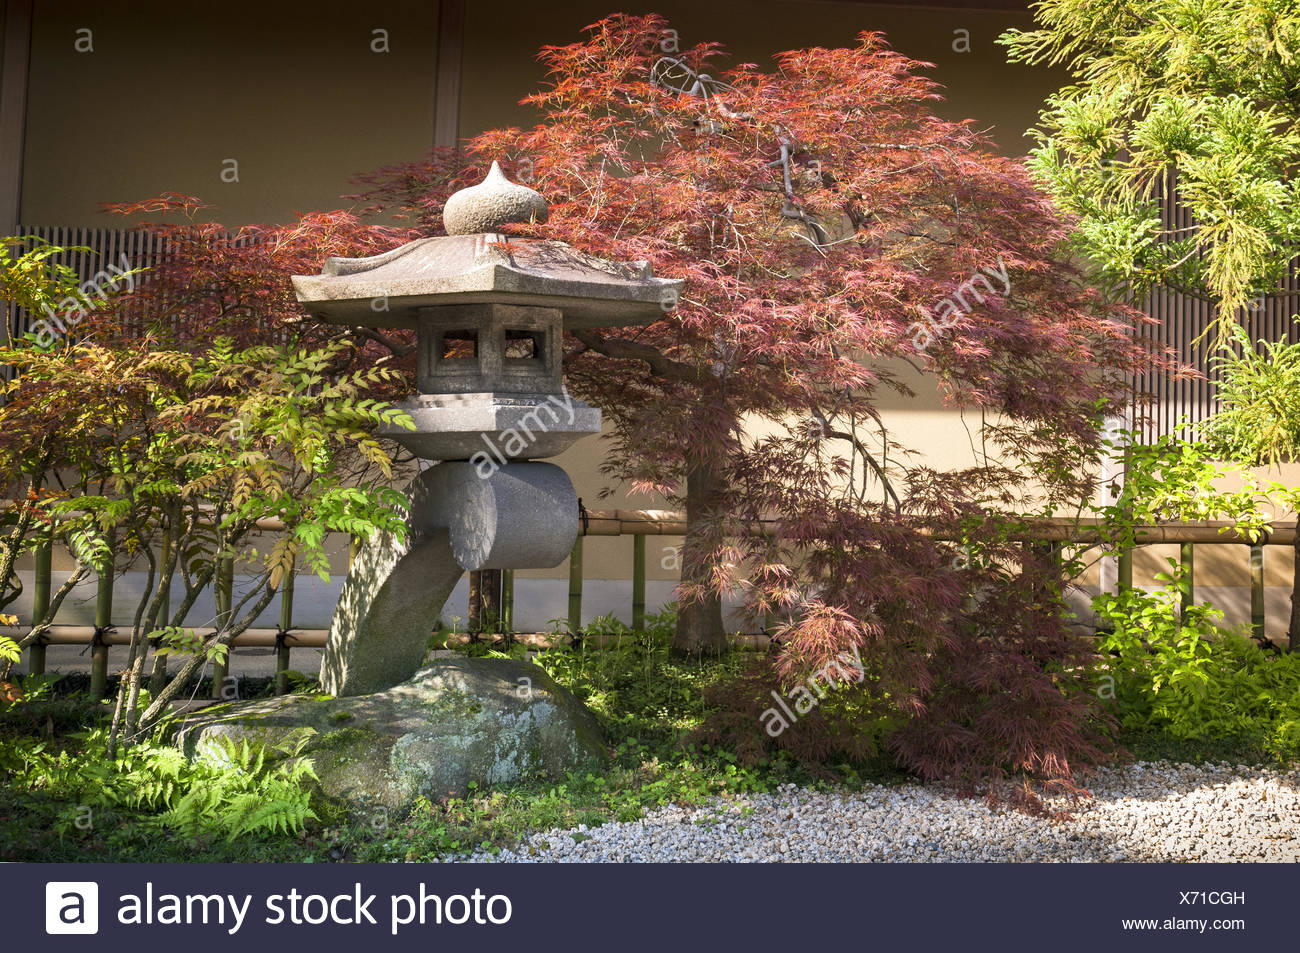 Japanese Garden Fence Stock Photos & Japanese Garden Fence Stock ...